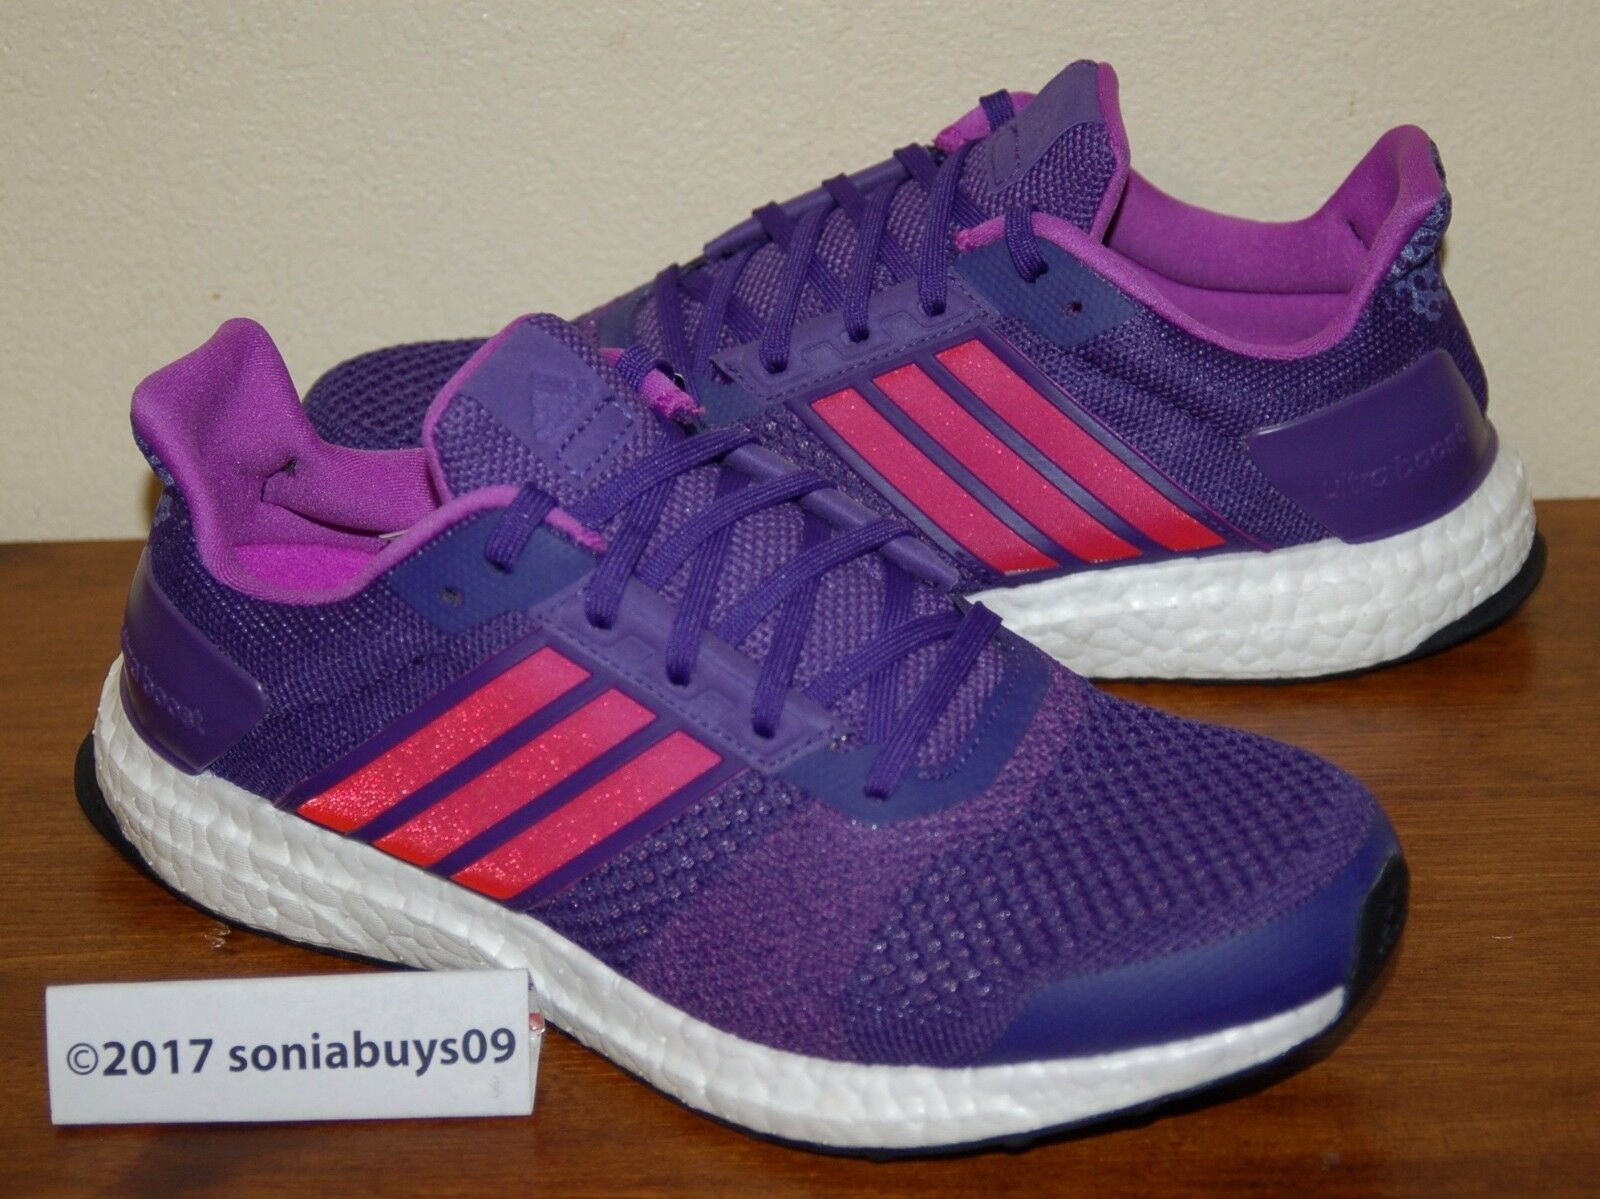 Adidas Women's Ultra Boost ST  Running shoes, AQ4430, Unity Purple, US Sizes  authentic online